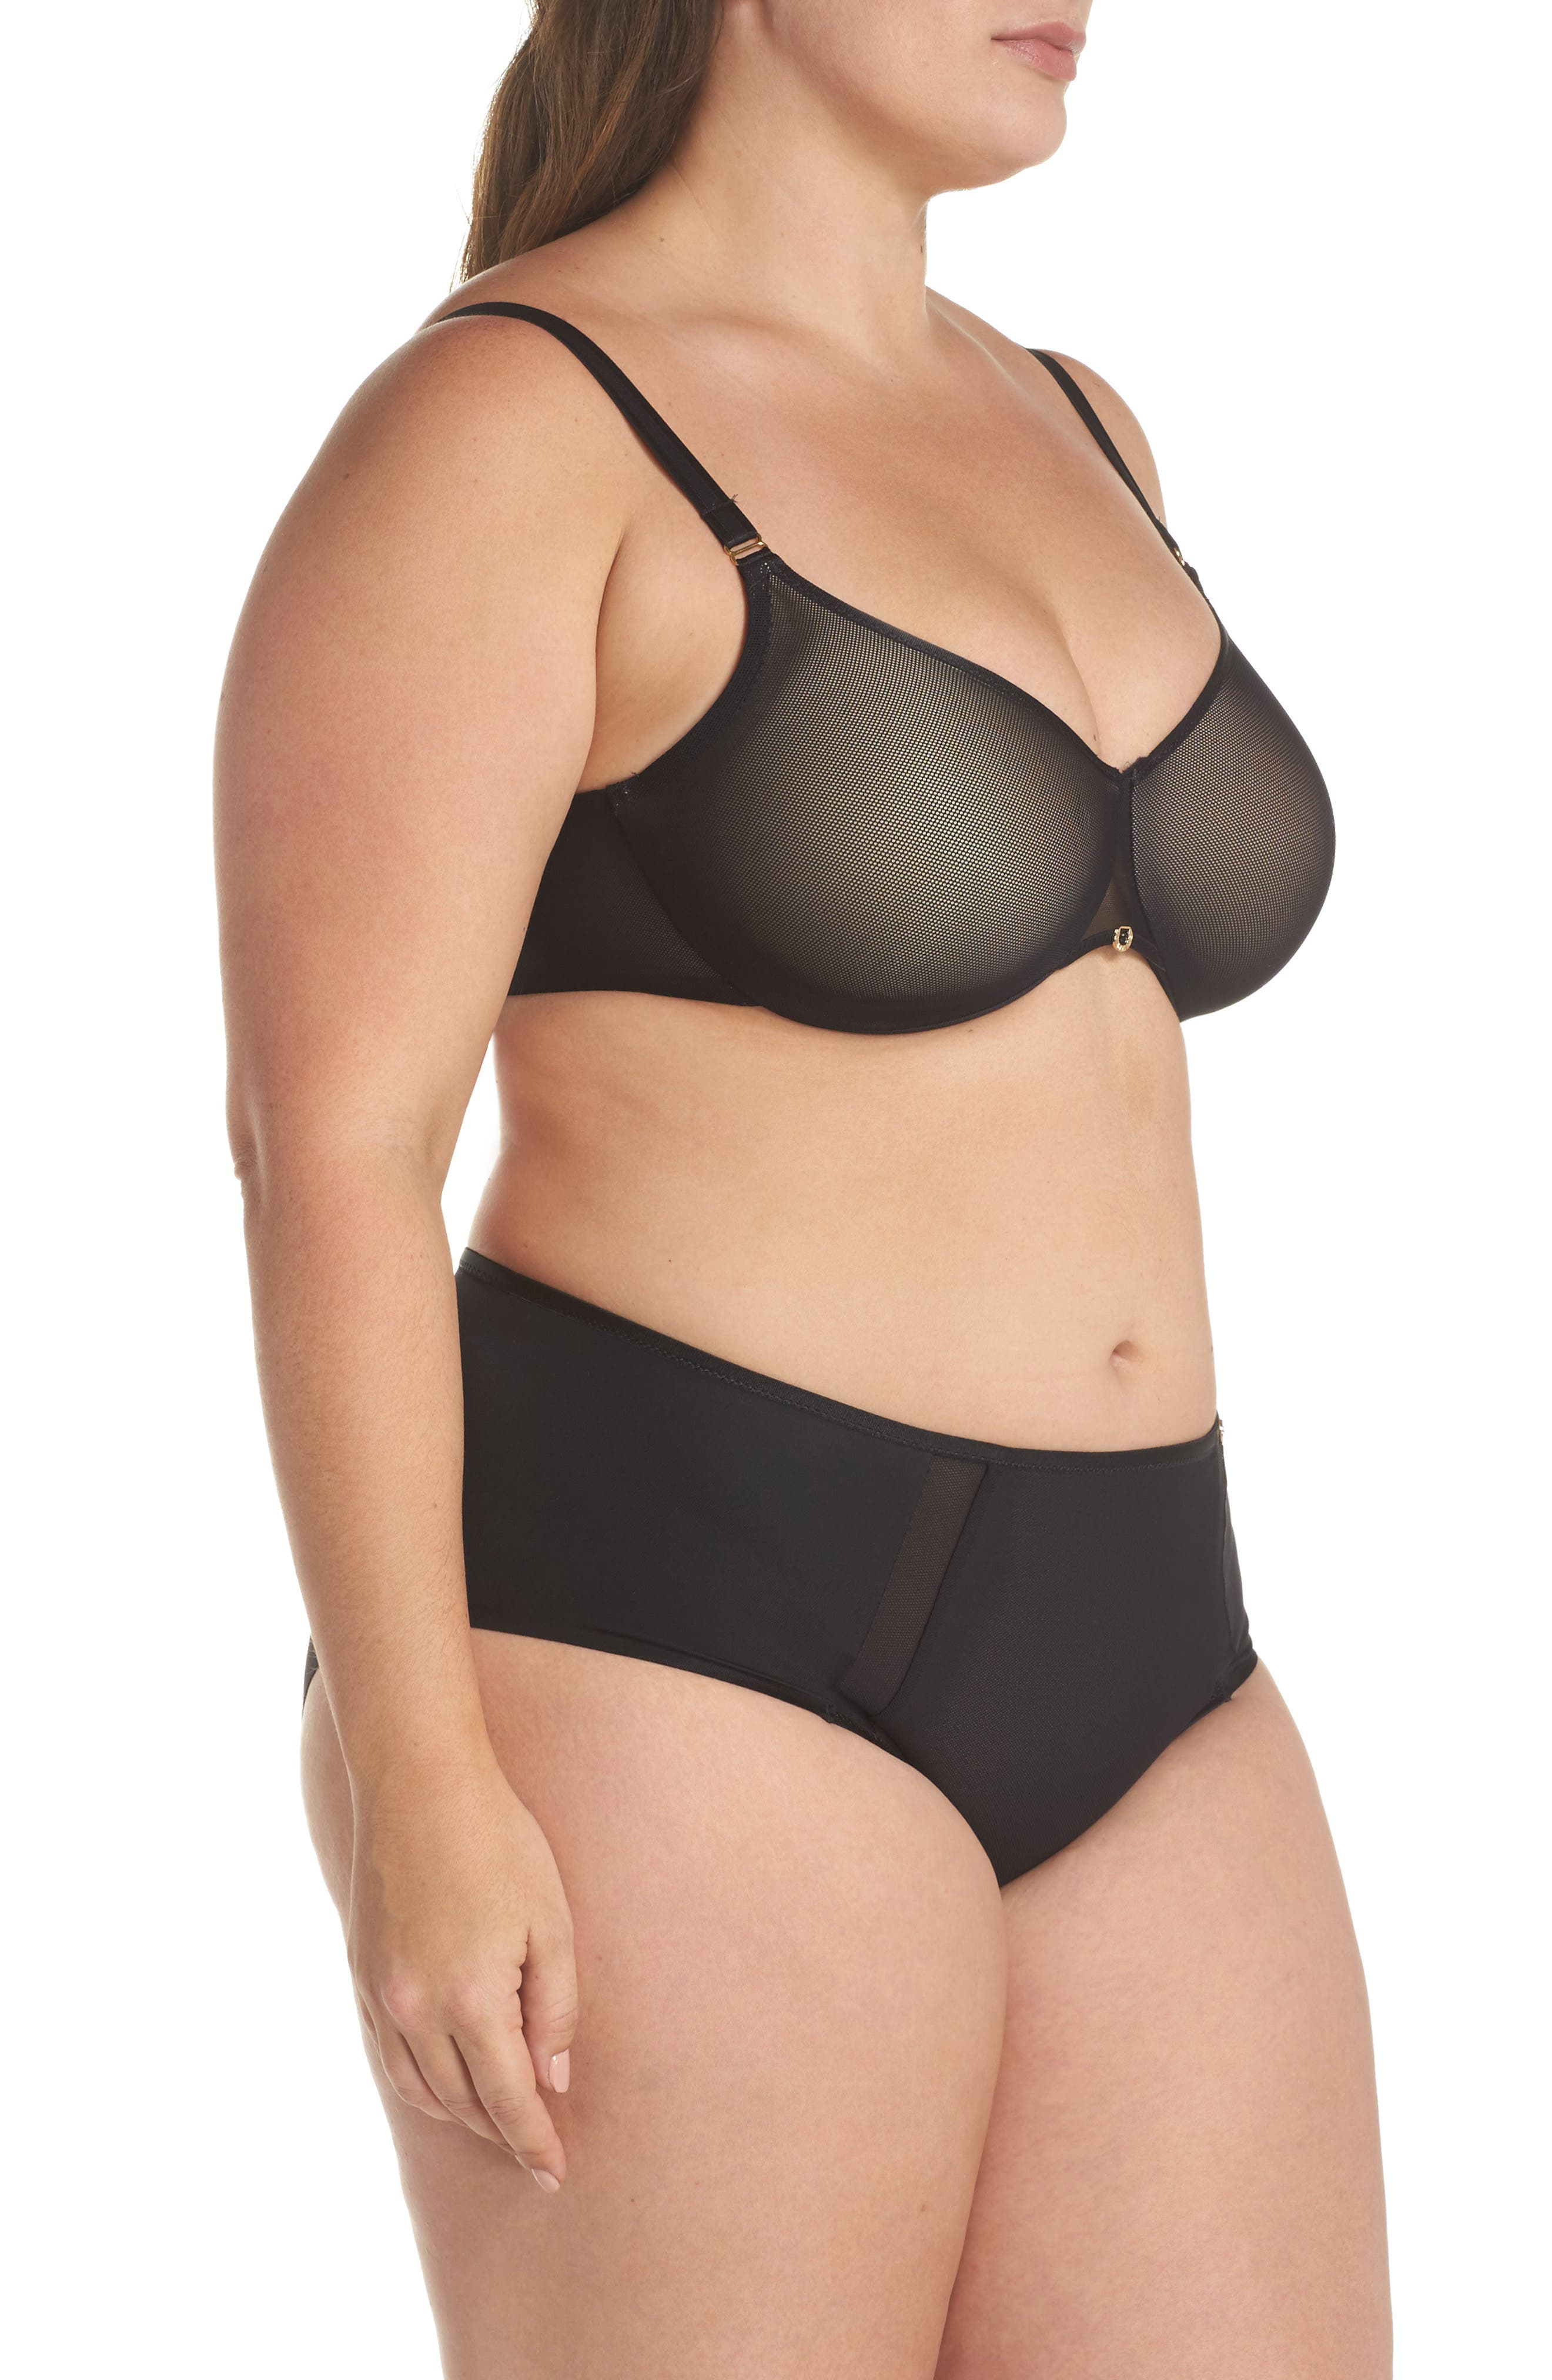 CHANTELLE LINGERIE, C Magnifique Sexy Full Coverage Underwire Bra, Alternate thumbnail 11, color, BLACK